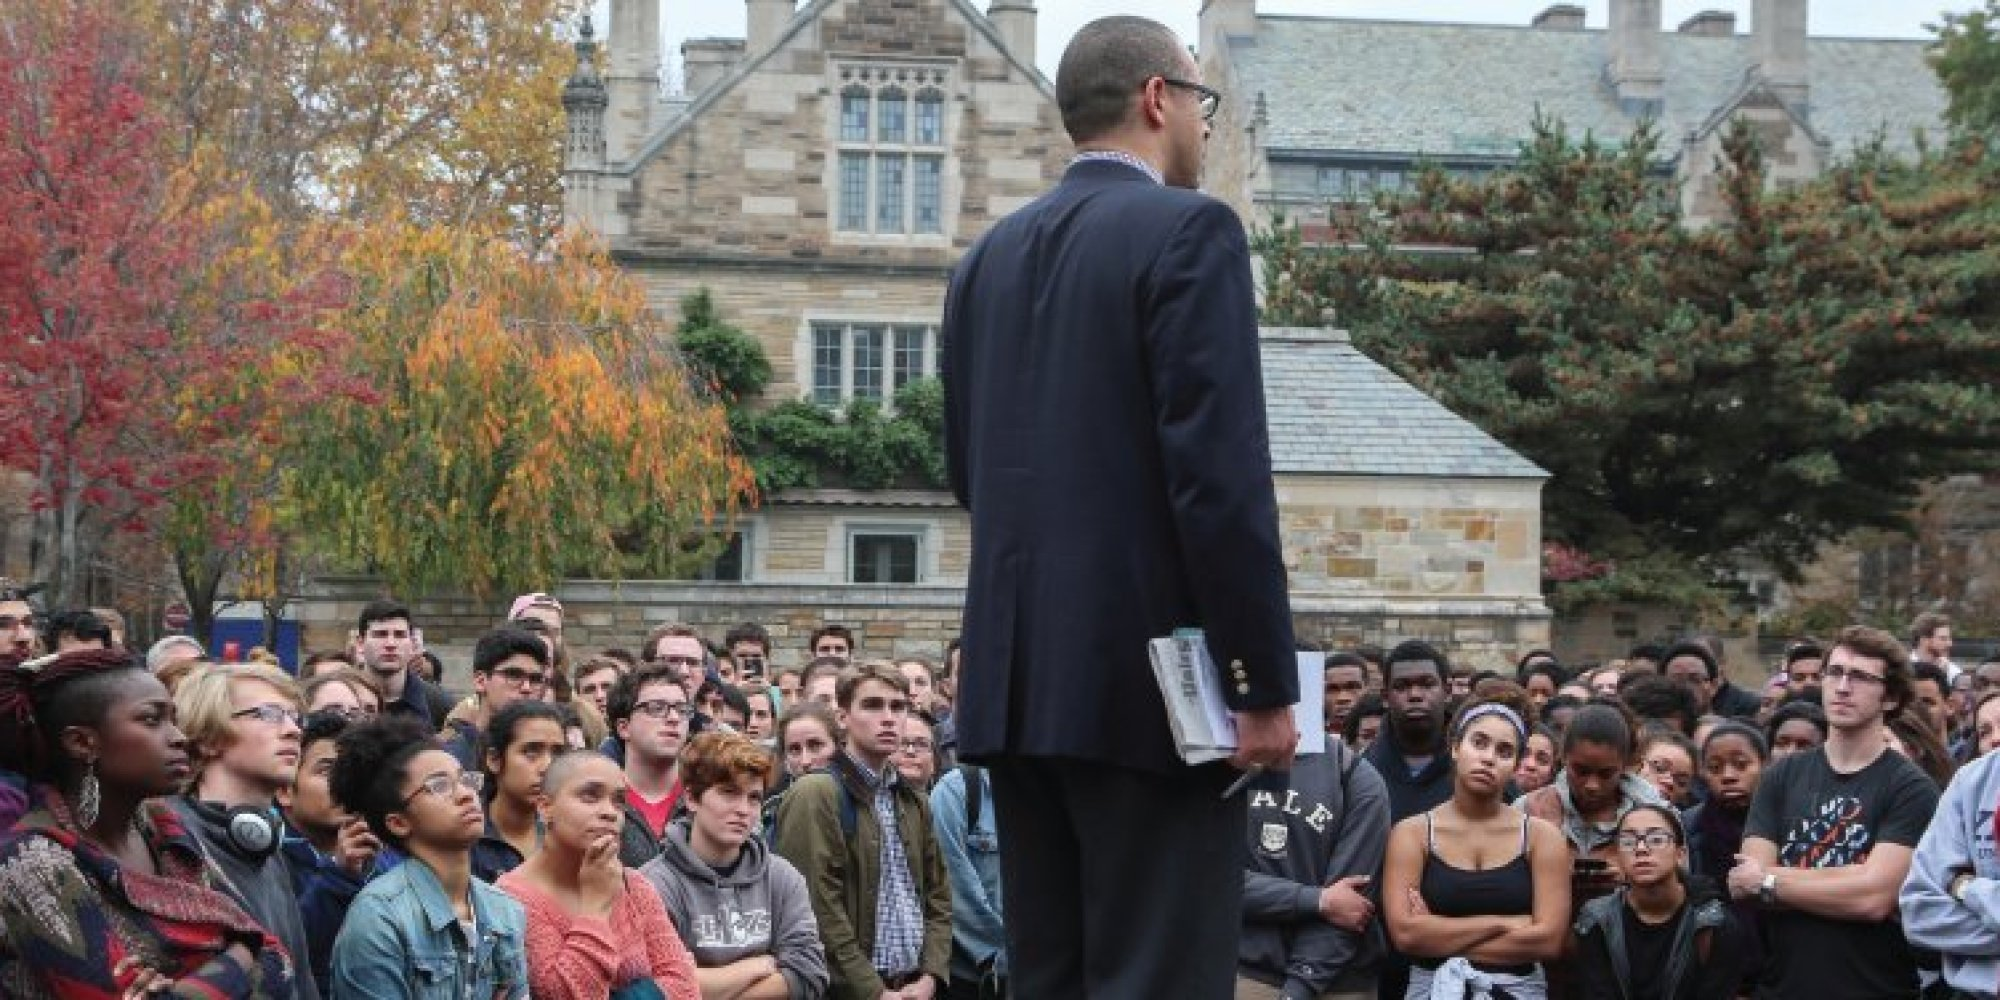 What You Don't Know About the Protests at Yale | HuffPost